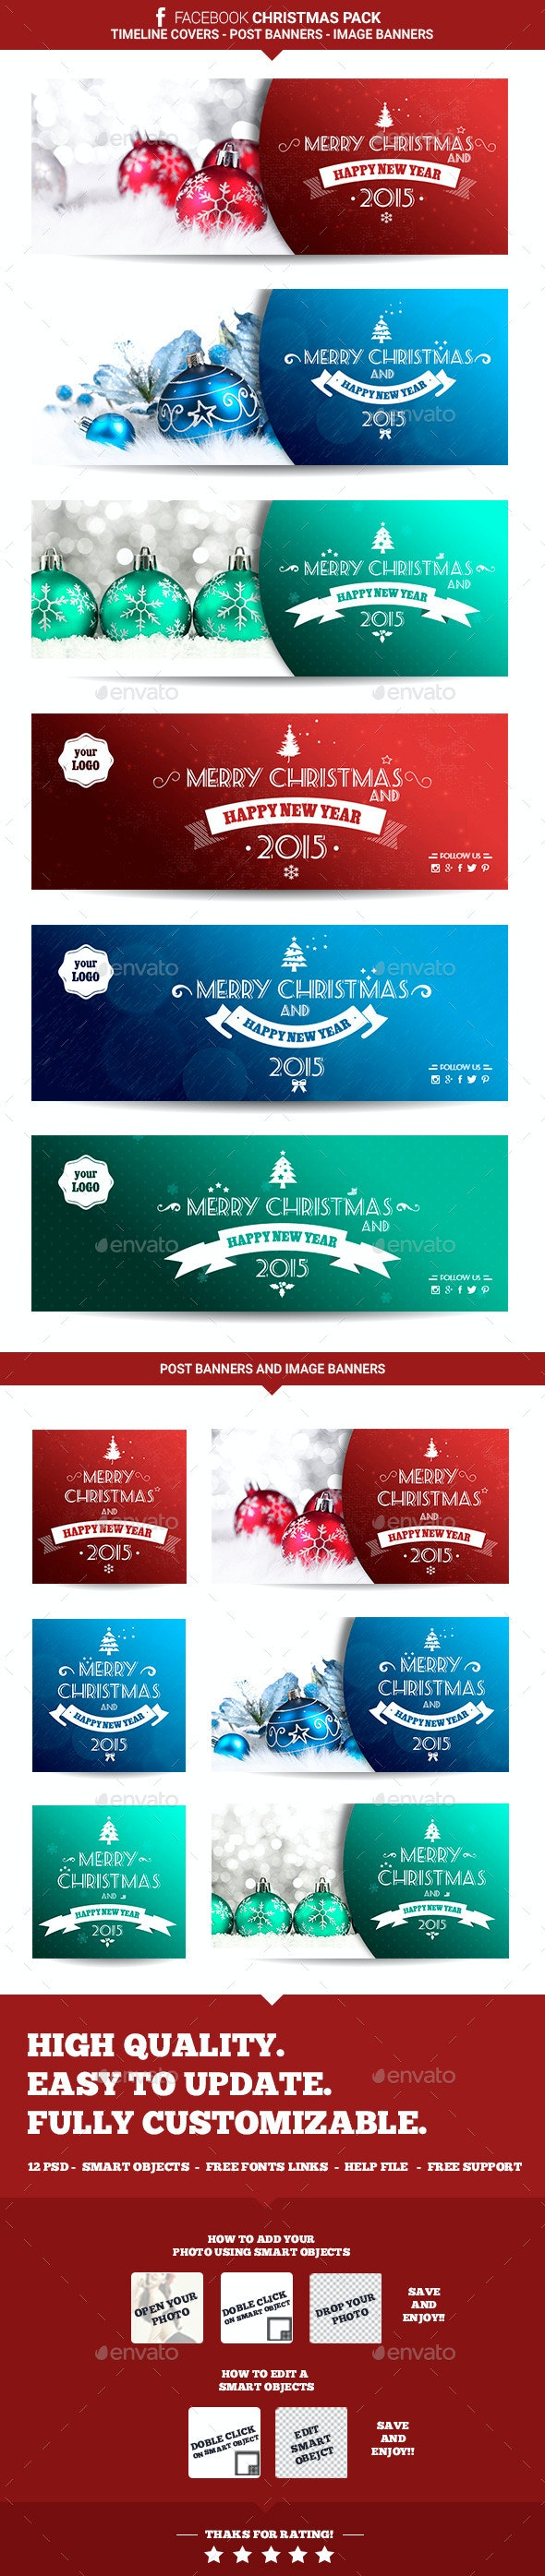 Facebook Christmas Pack - Facebook Timeline Covers Social Media